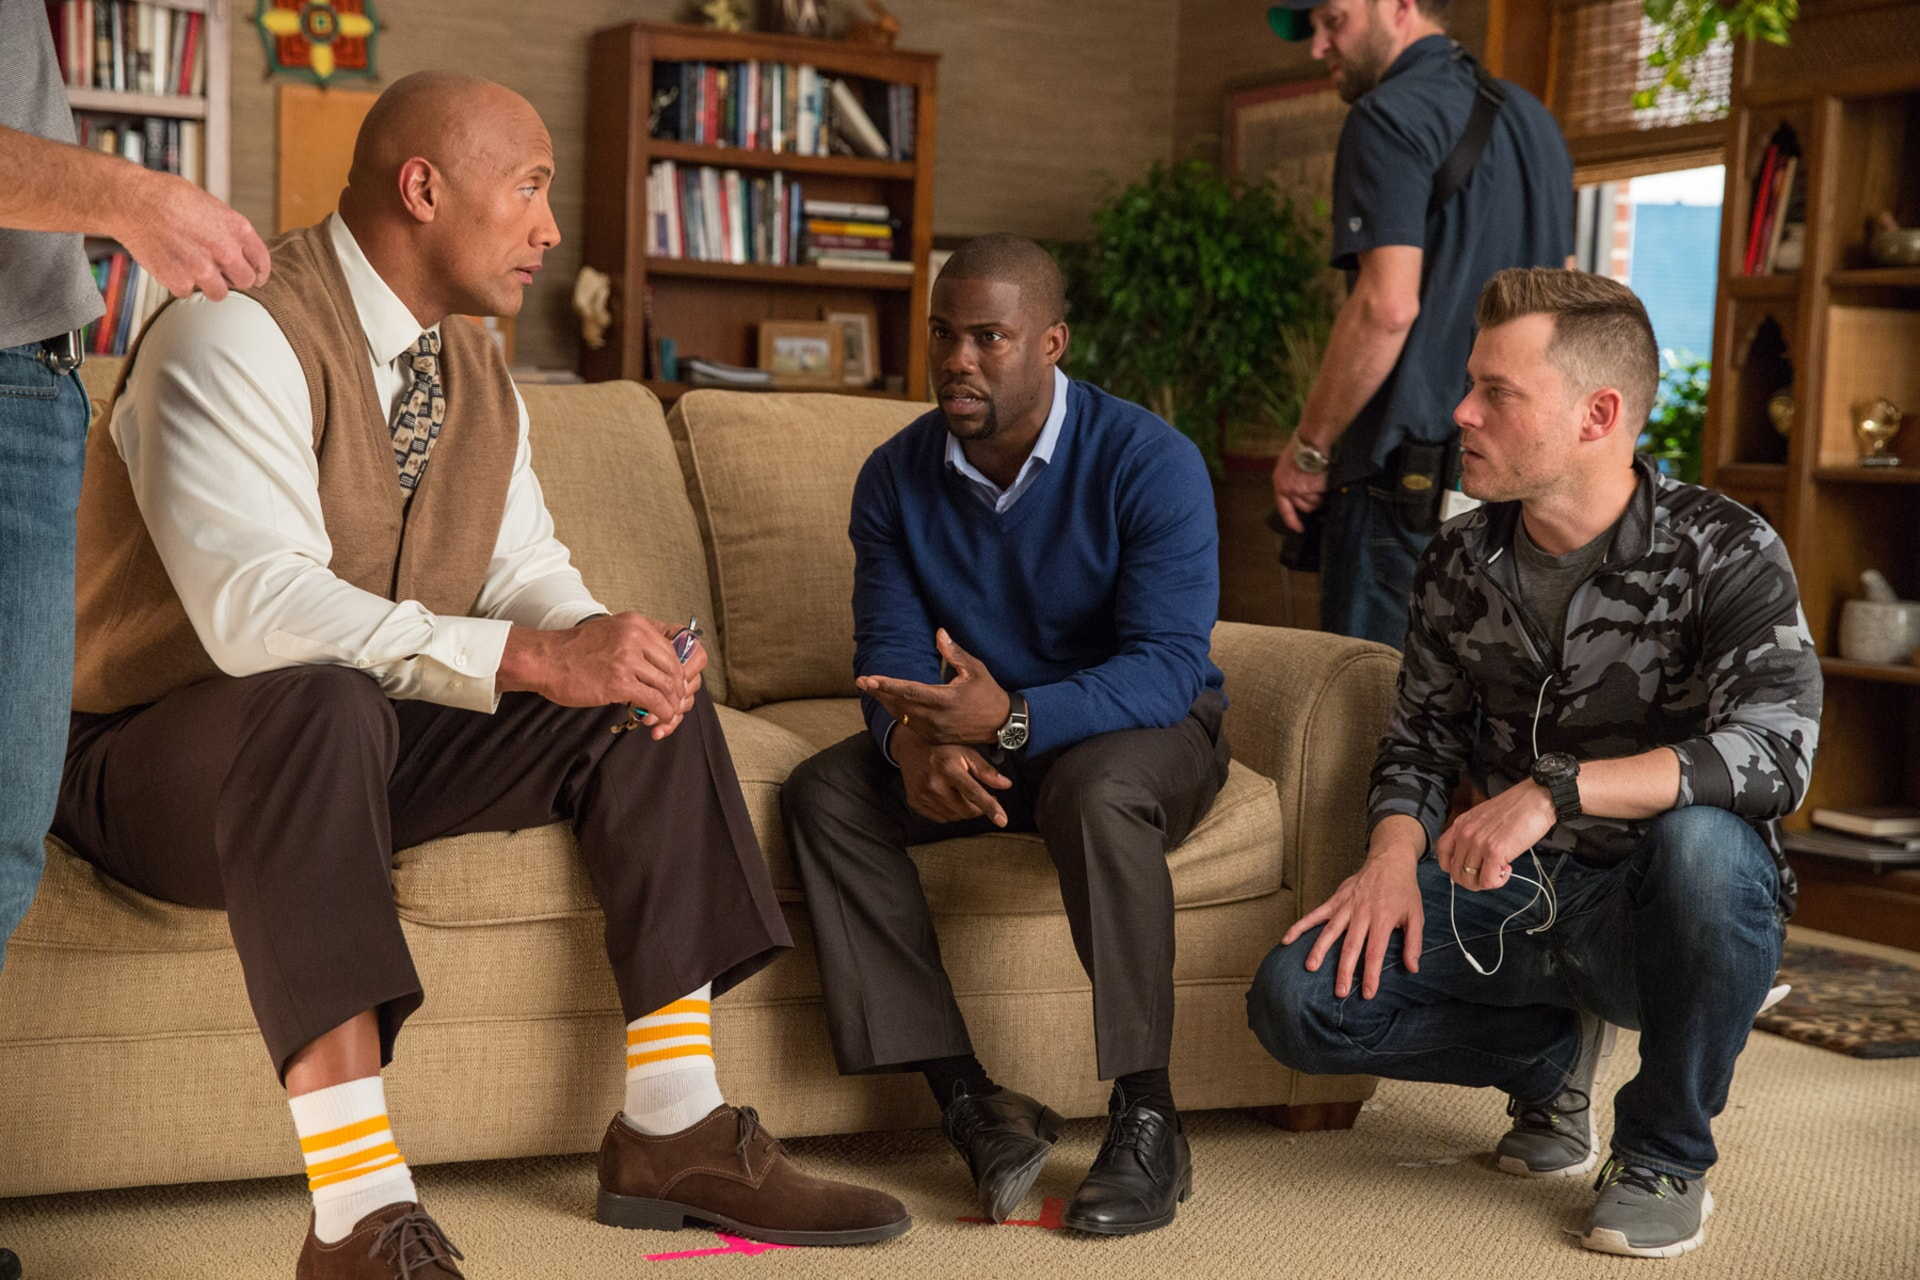 DWAYNE JOHNSON, KEVIN HART and director RAWSON MARSHALL THURBER on the set